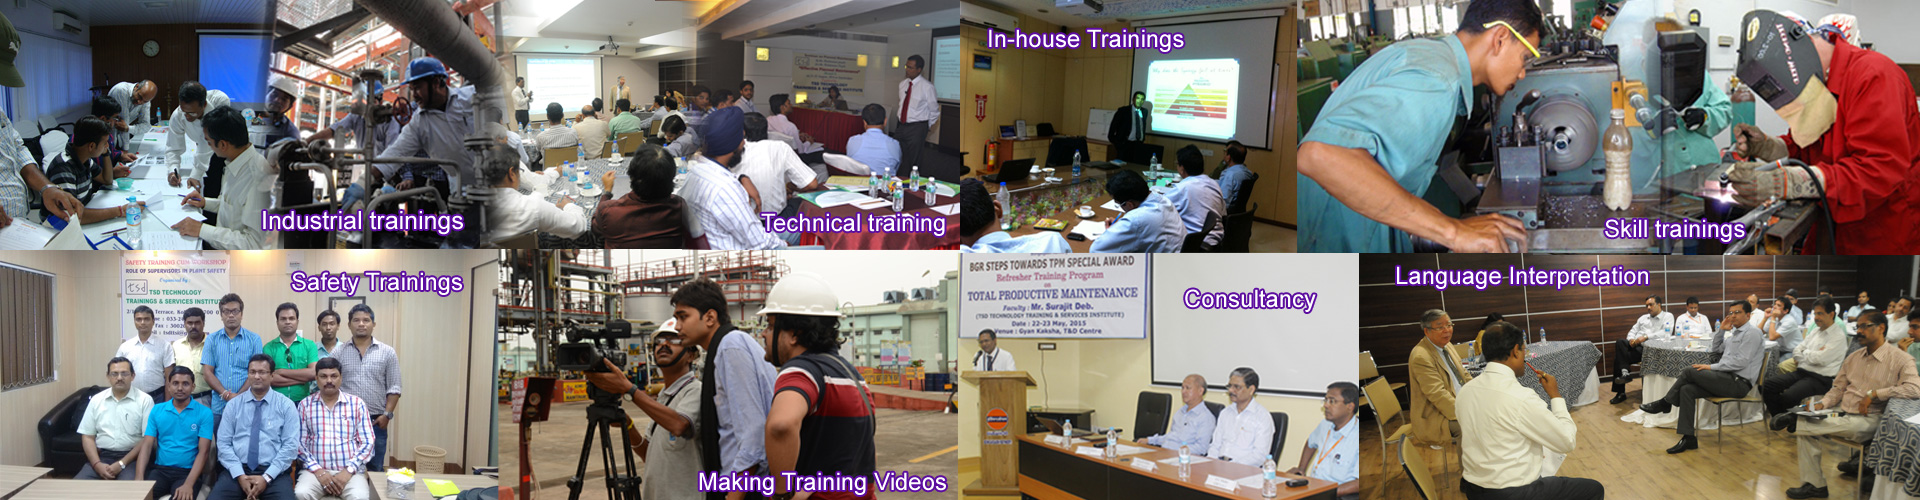 Tsd Technology Trainings & Services Institute